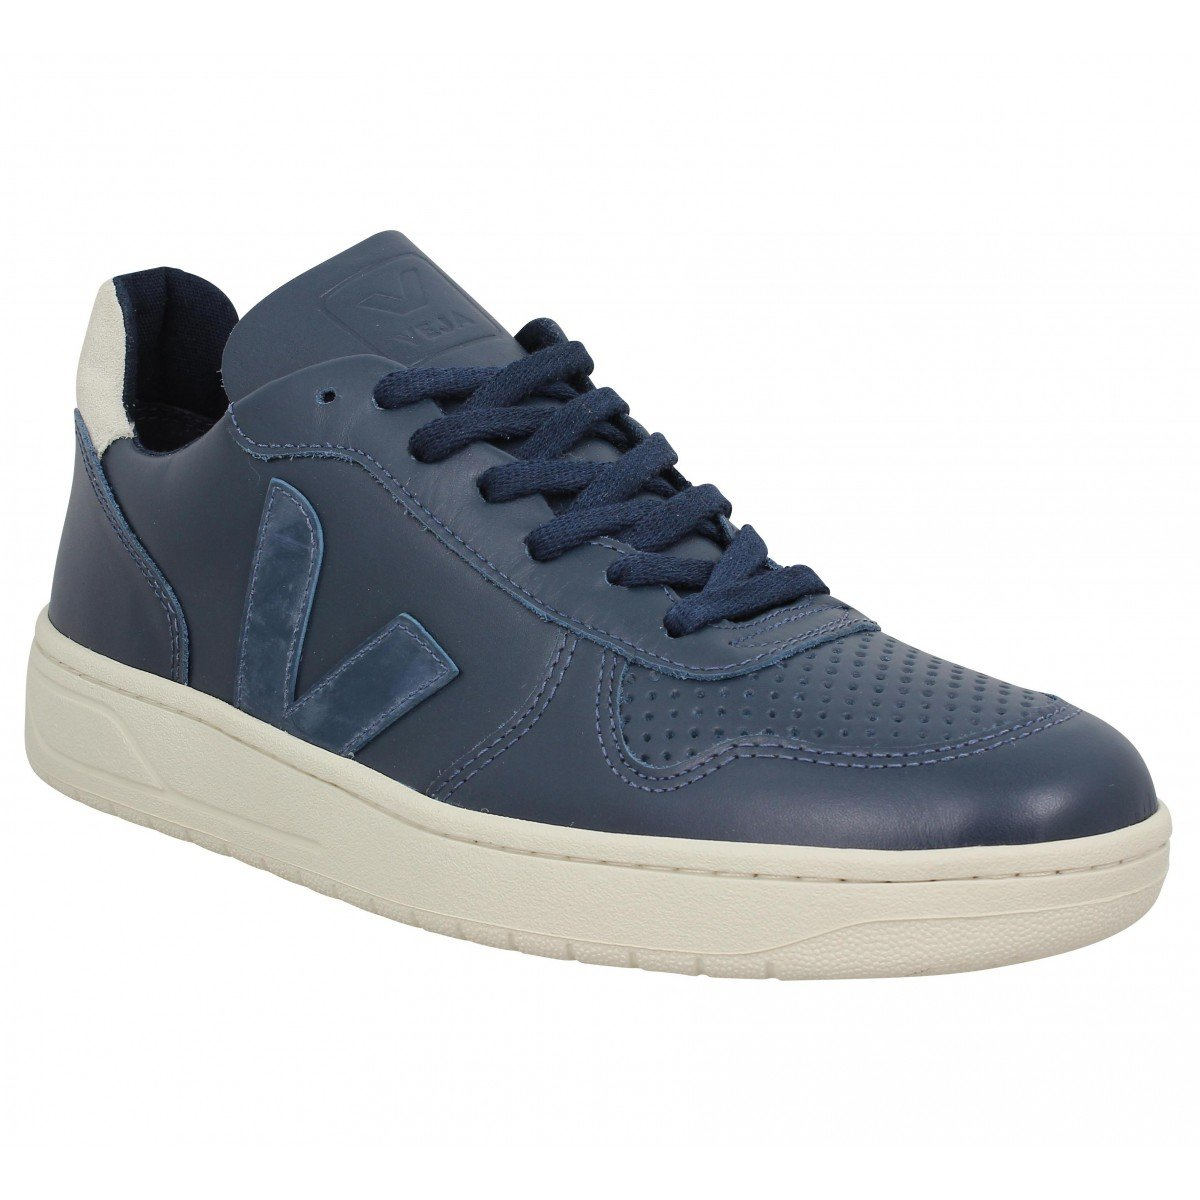 14abc868d8f2 VEJA - Trainers - Men - Navy V10 Leather Sneakers for men - 40   Amazon.co.uk  Shoes   Bags